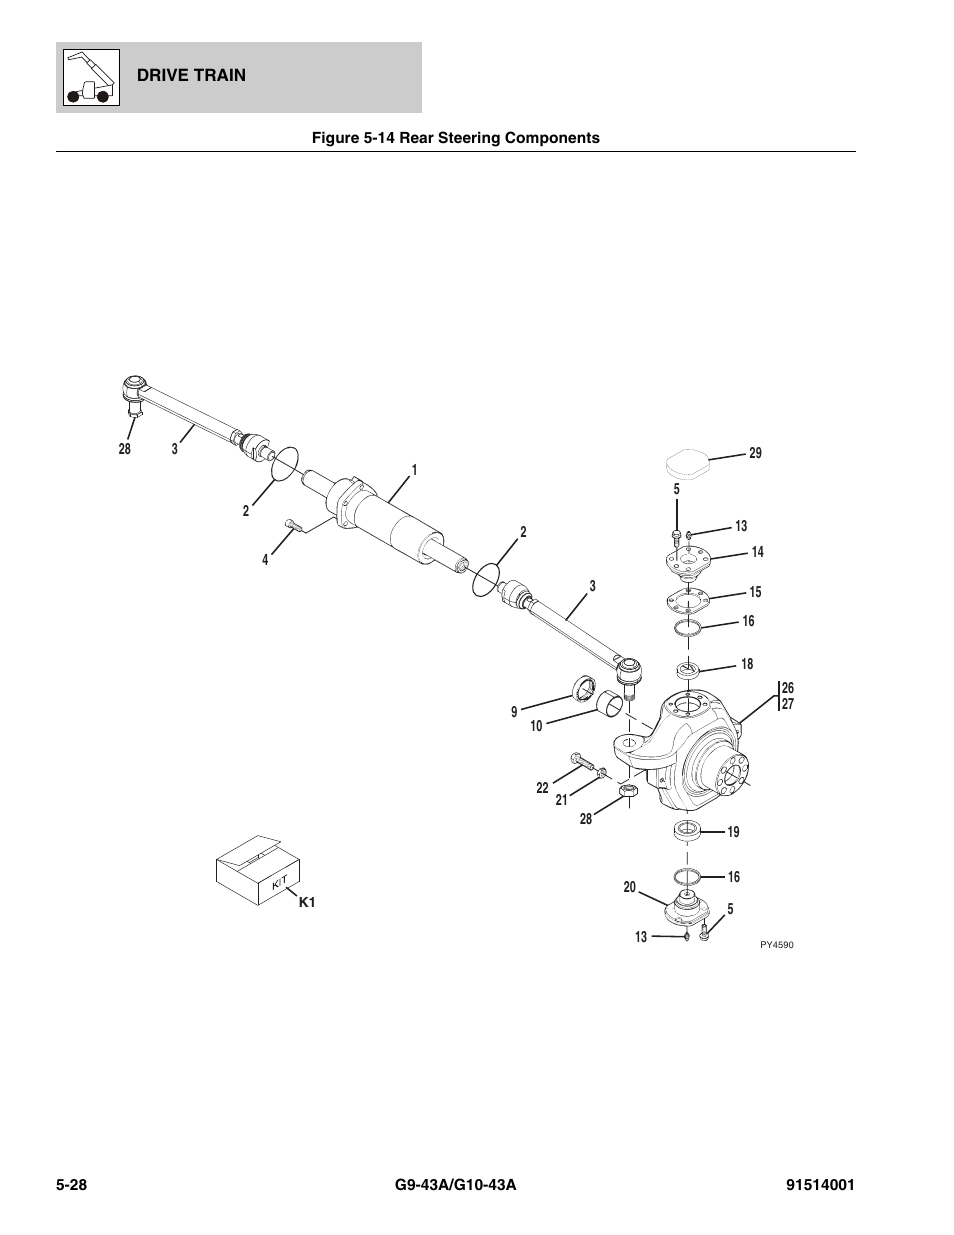 Figure 5-14 rear steering components, Rear steering